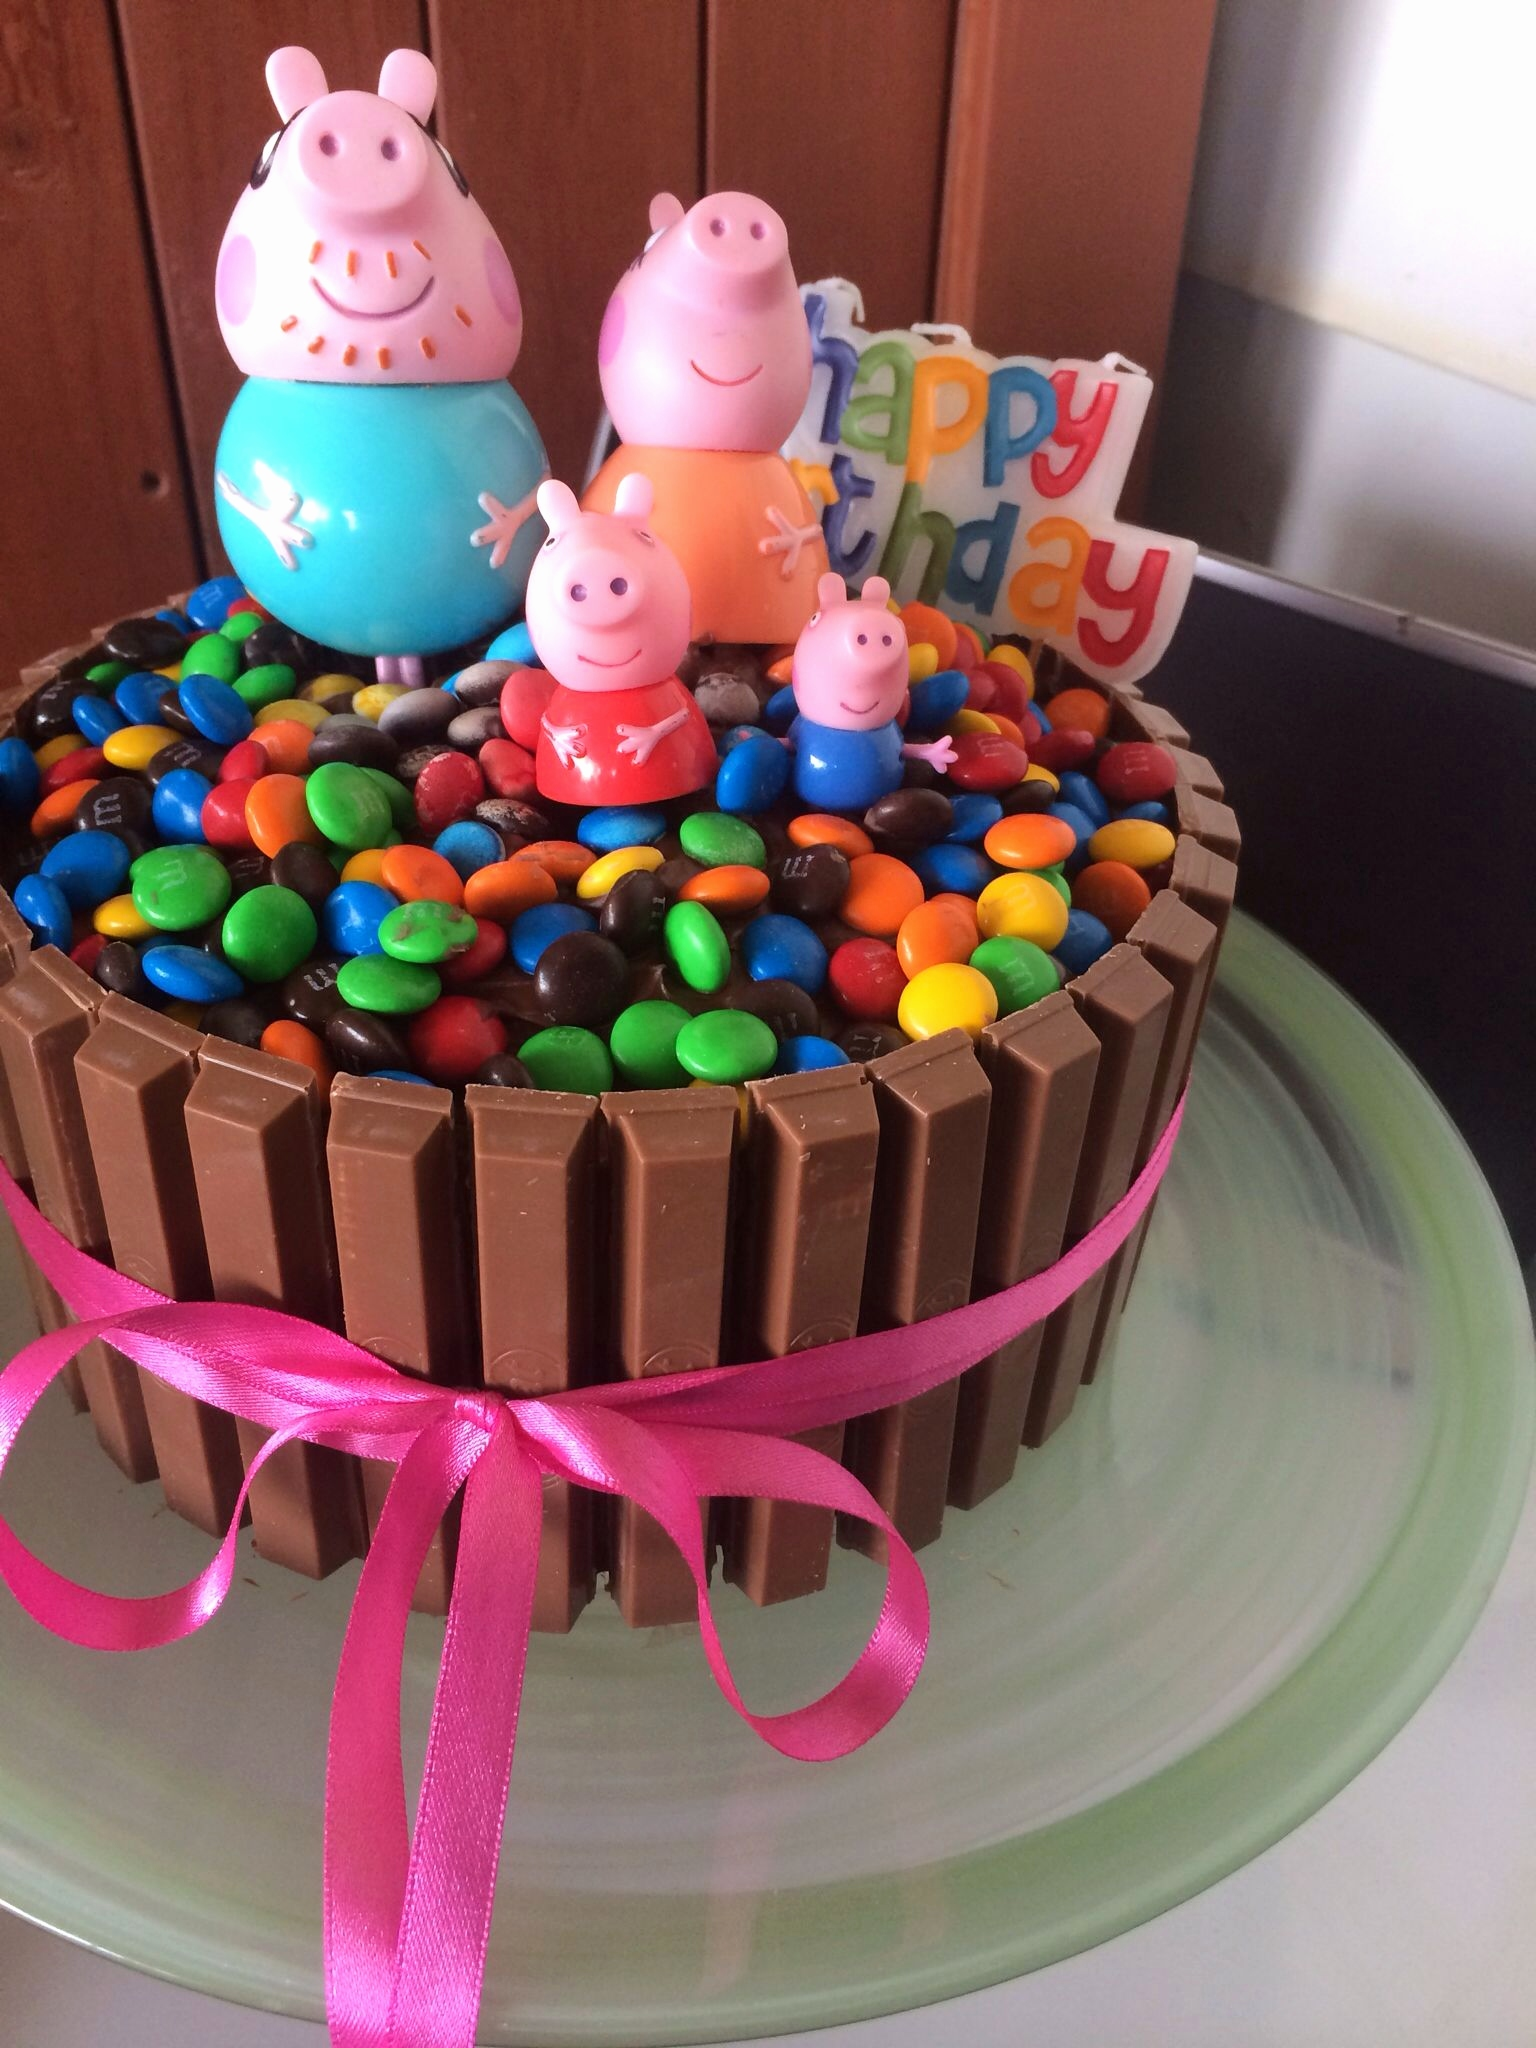 Smarties Kitkat Kuchen Neu Peppa Pig Chocolate Cake Kitkat Smarties M N Ms Kids Birthday